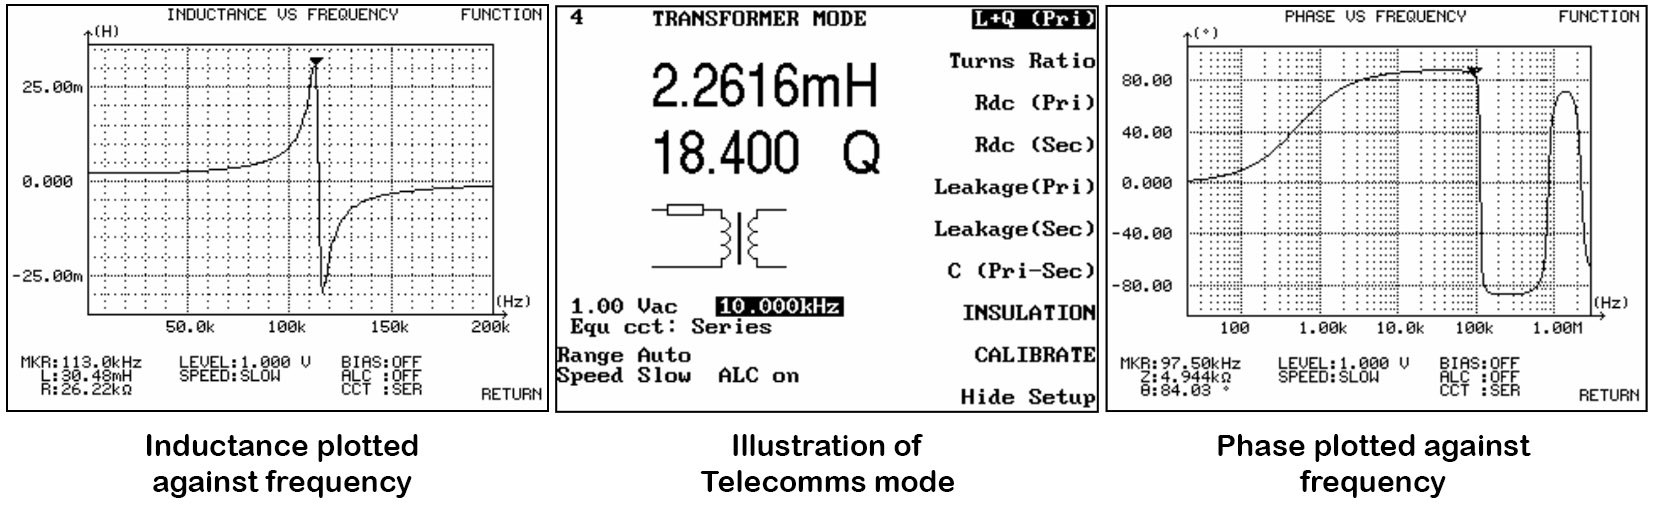 Wayne Kerr Electronics Products 3260b Series Precision Magnetics Inductor Circuits Symbols Completely Characterize Components Graphically